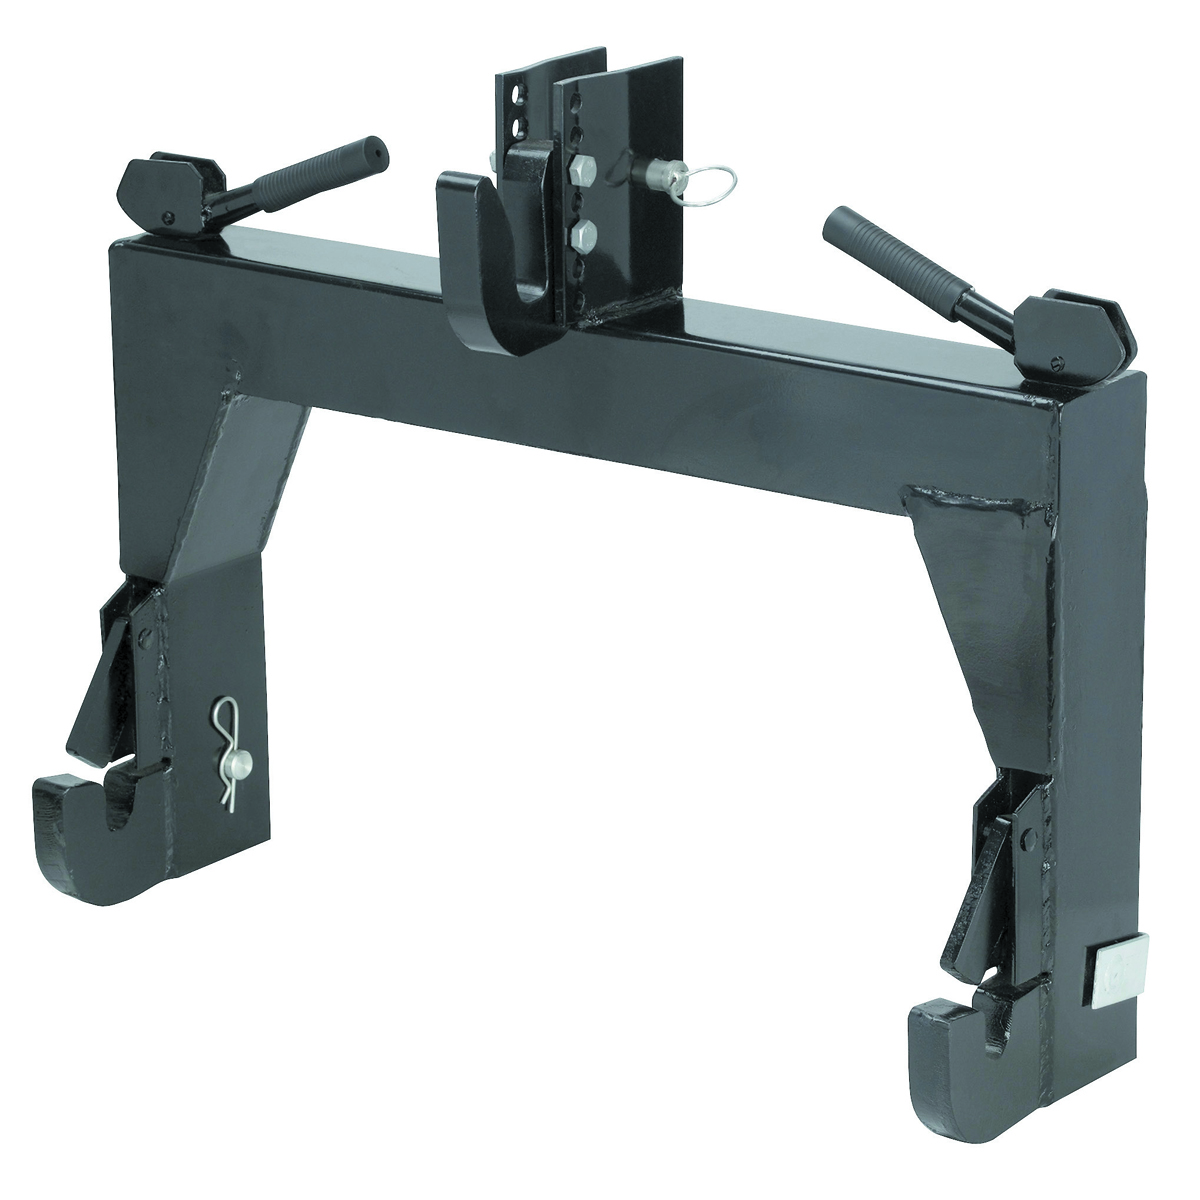 3 Point Quick Hitch For Tractors 27 3 16 Quot Clearance